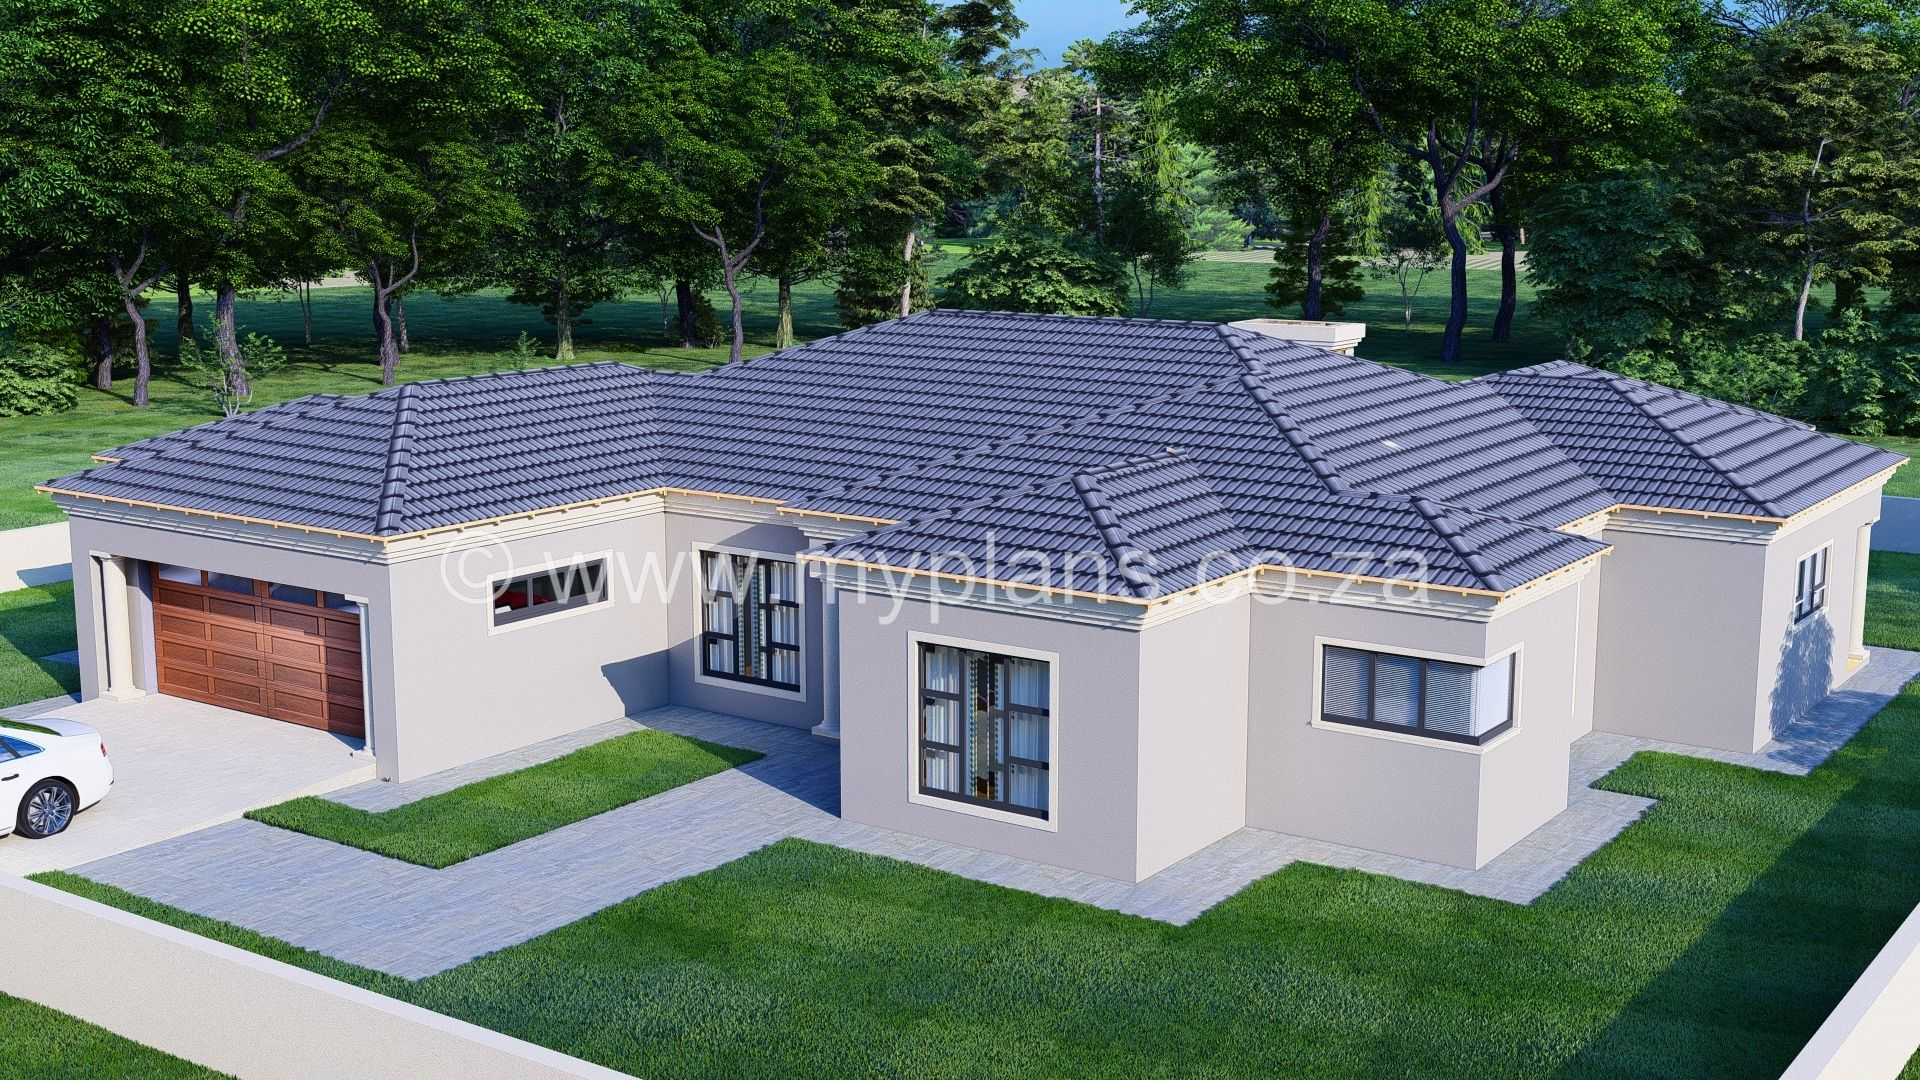 3 Bedroom House Plan Mlb 069s House Plan Gallery My House Plans Round House Plans